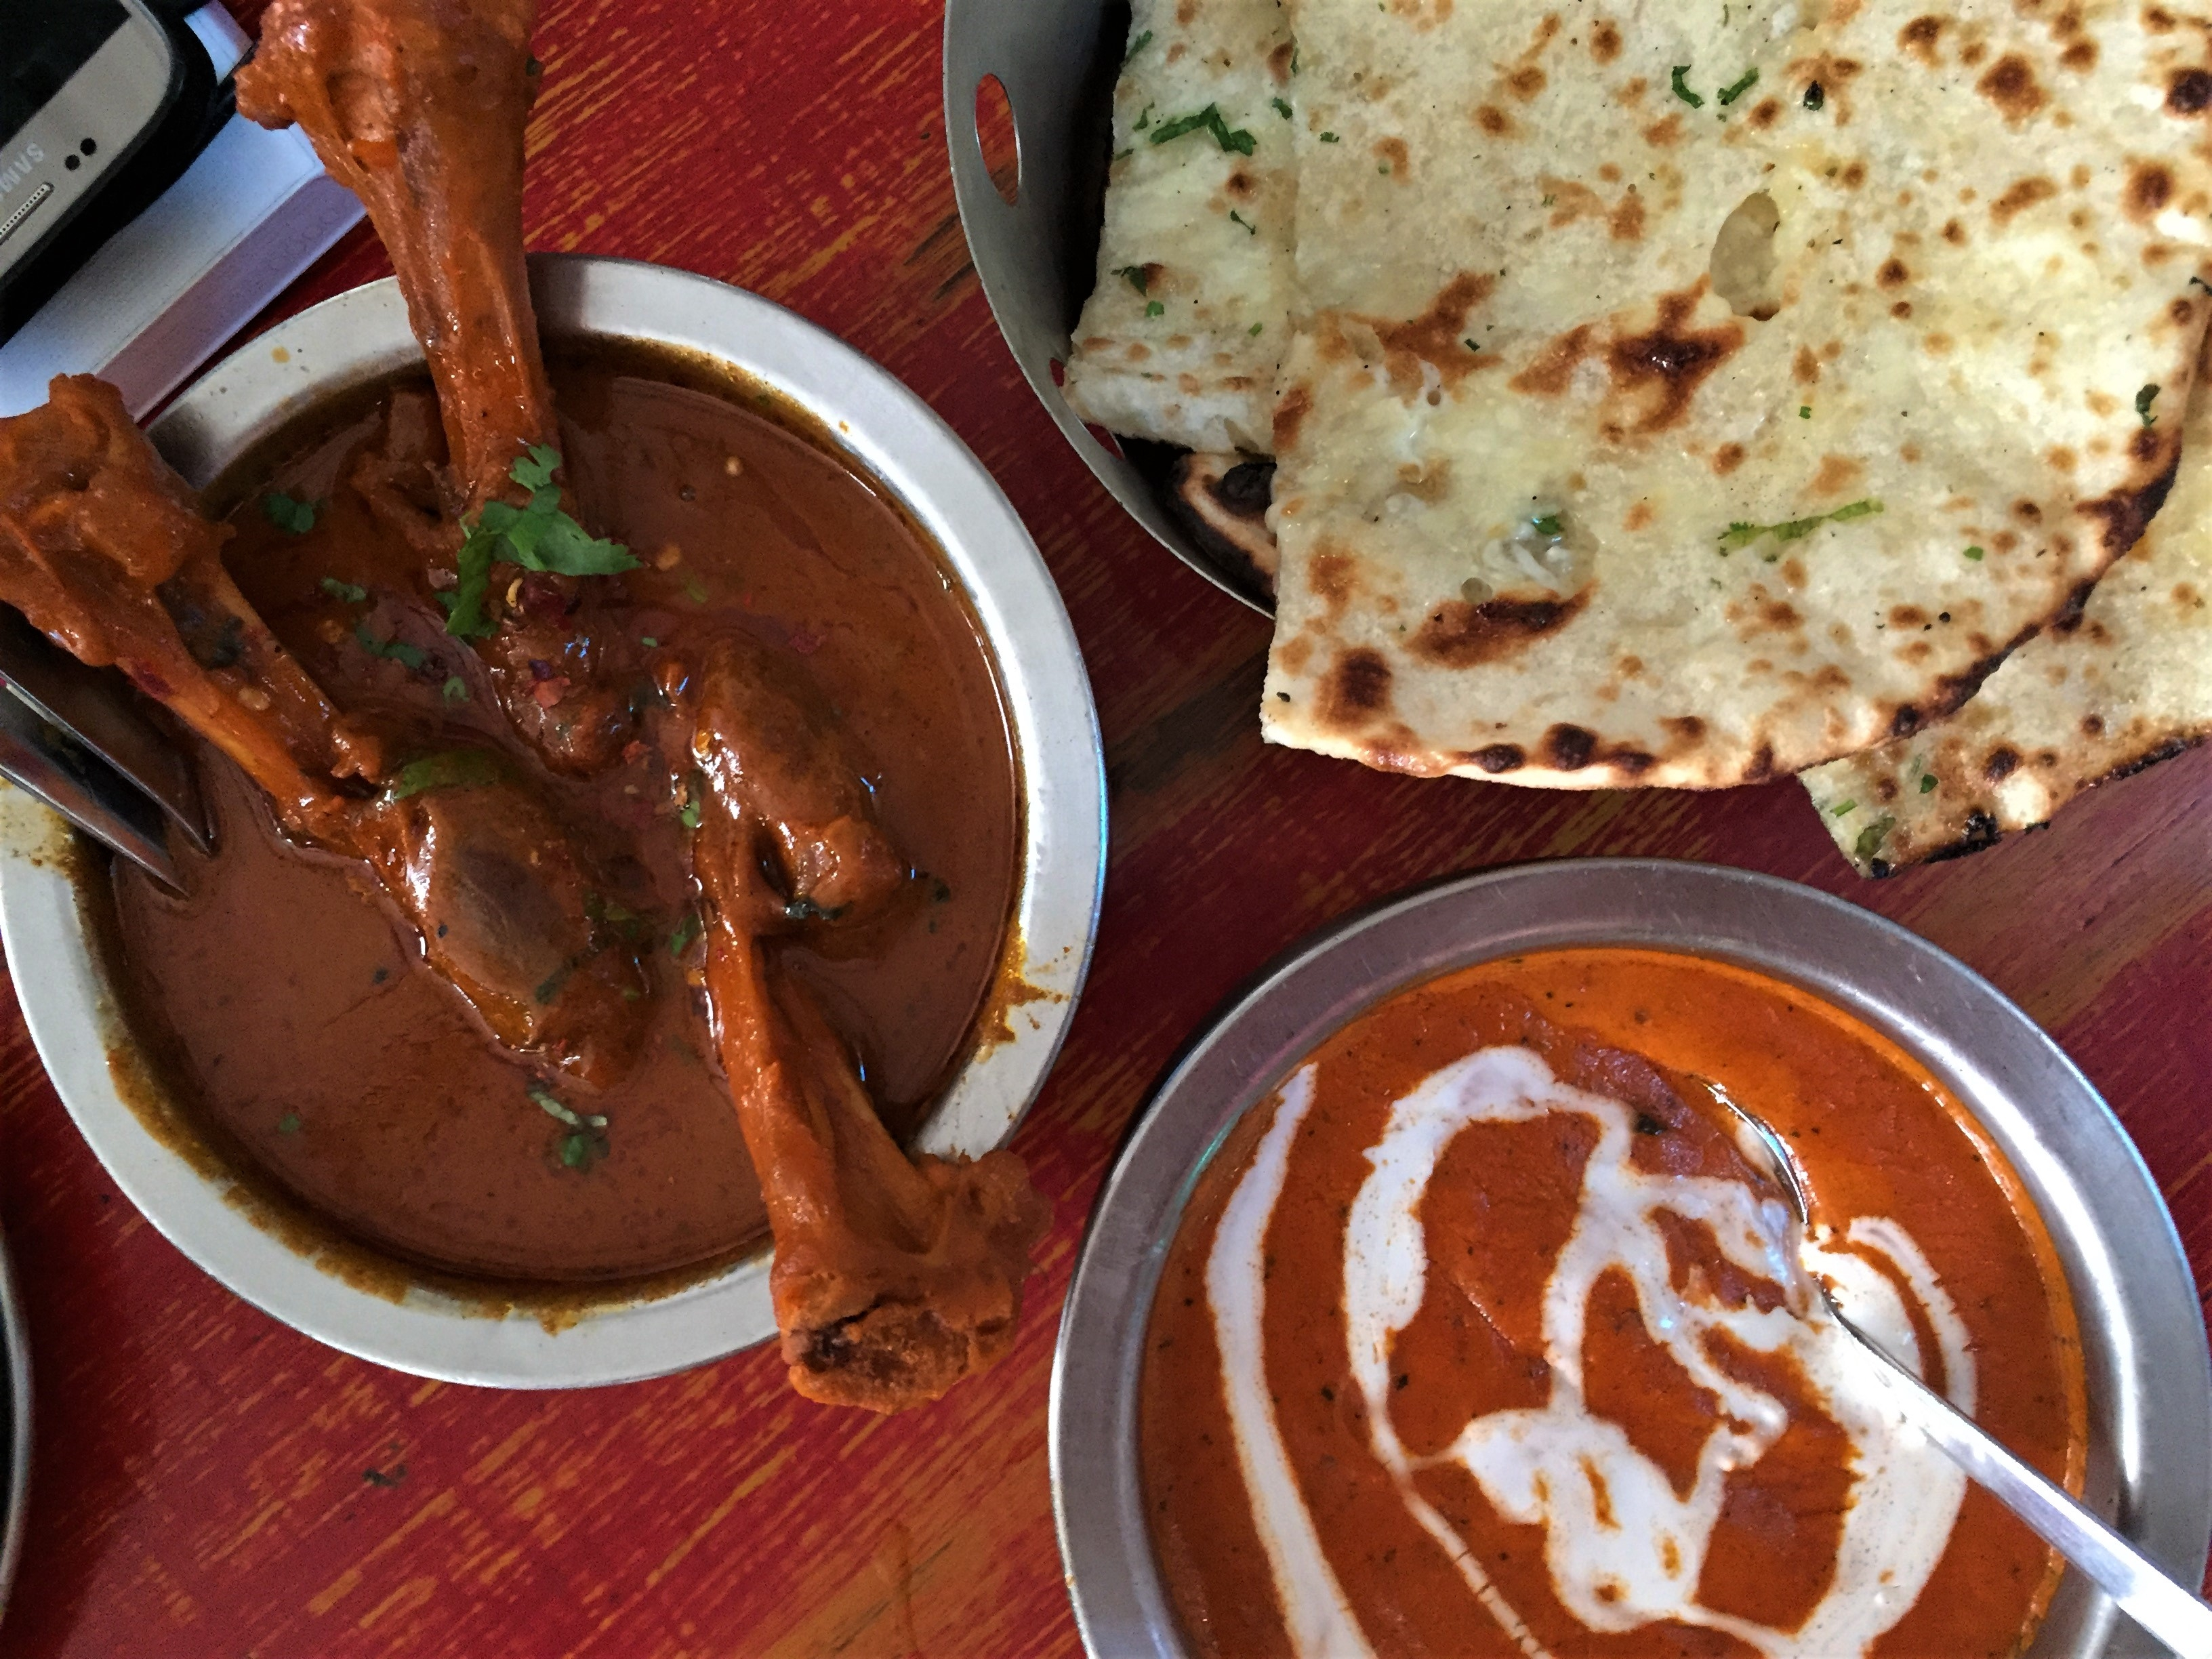 indian food is delicious with lamb and chicken